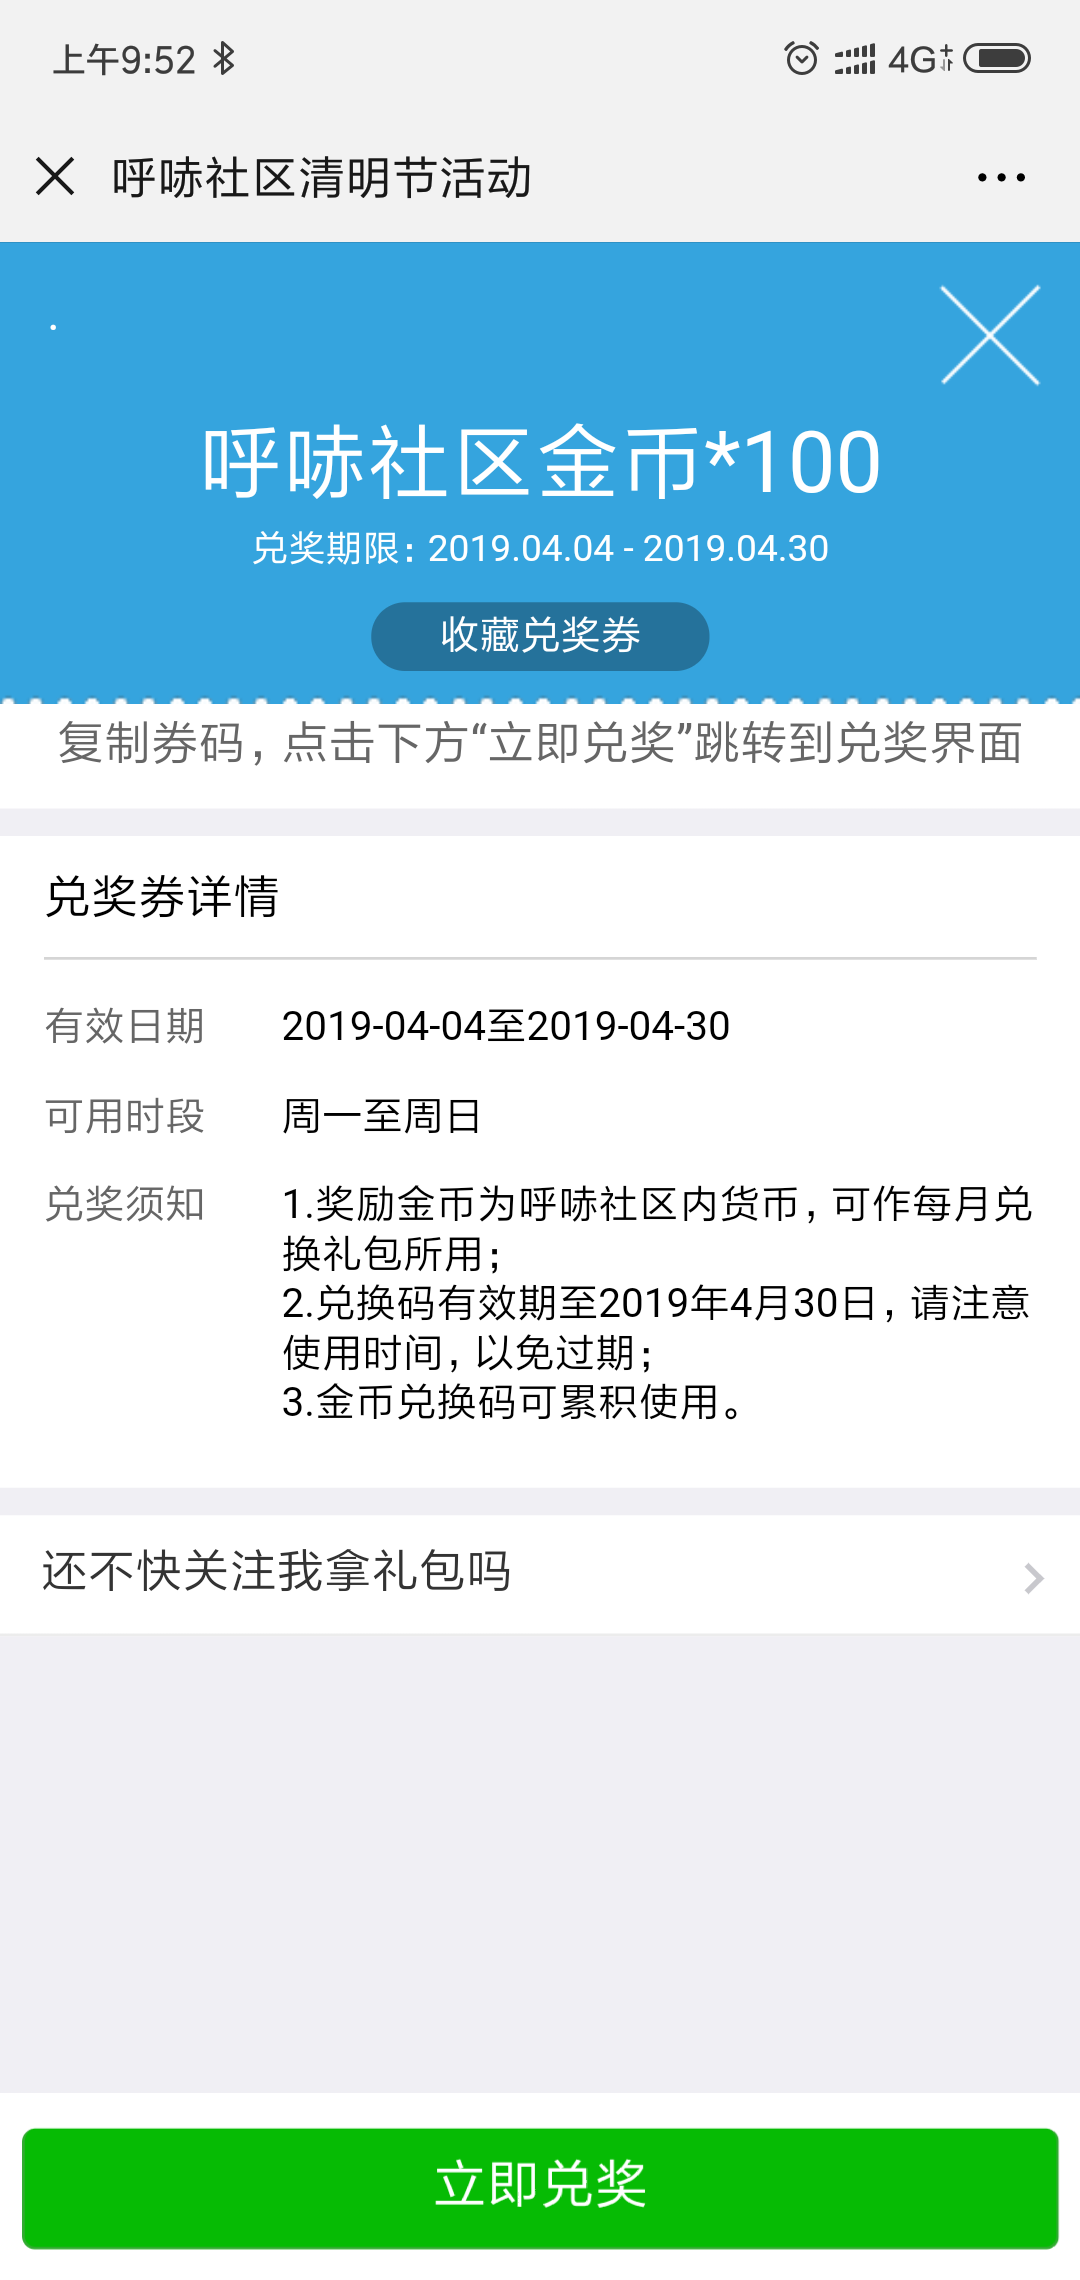 Screenshot_2019-04-05-09-52-44-842_com.tencent.mm.png